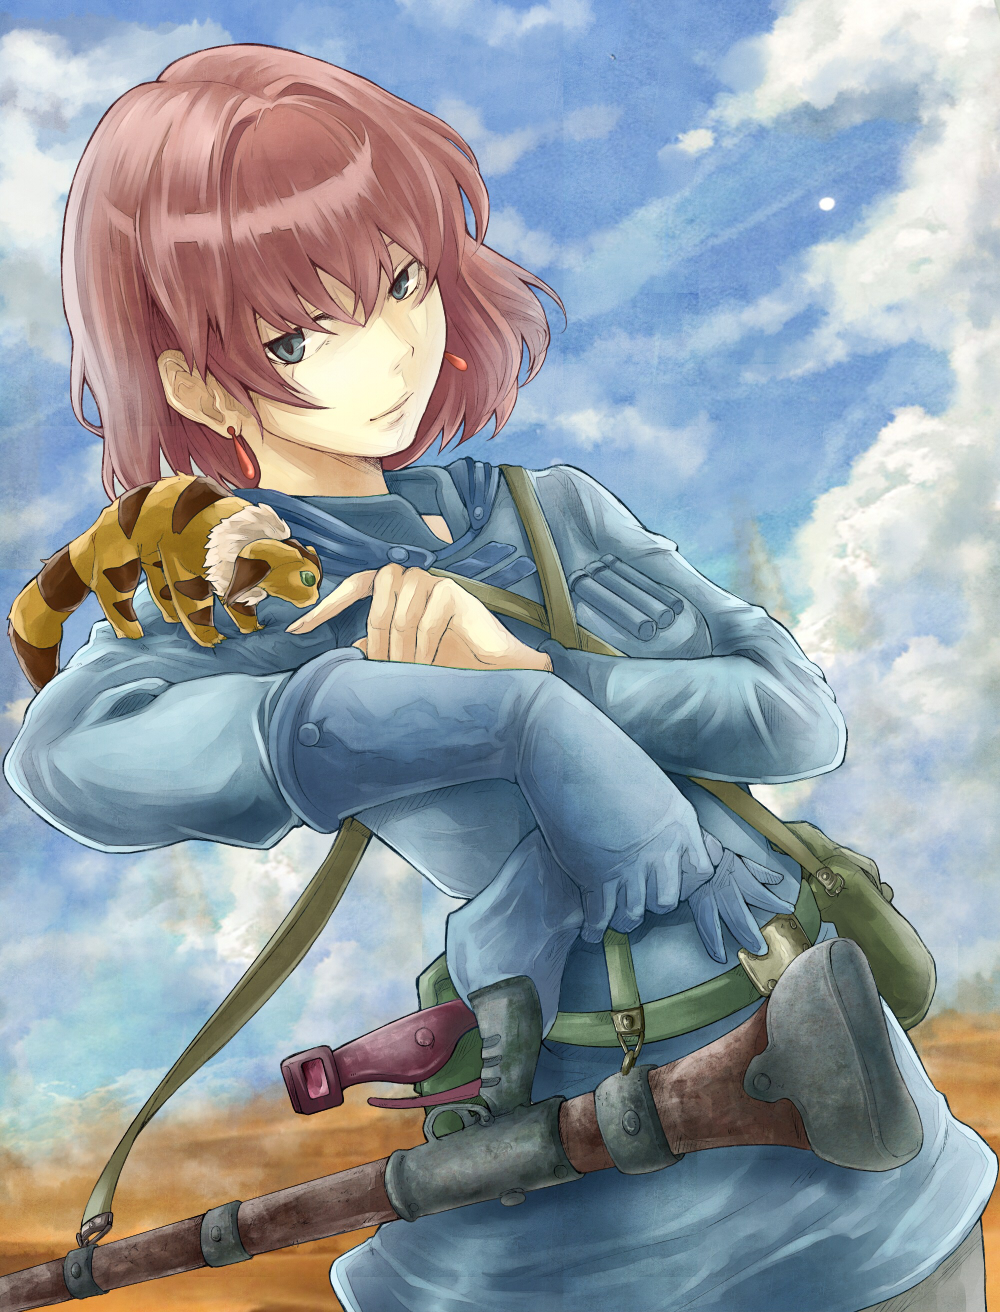 nausicaa of the valley of the wind download